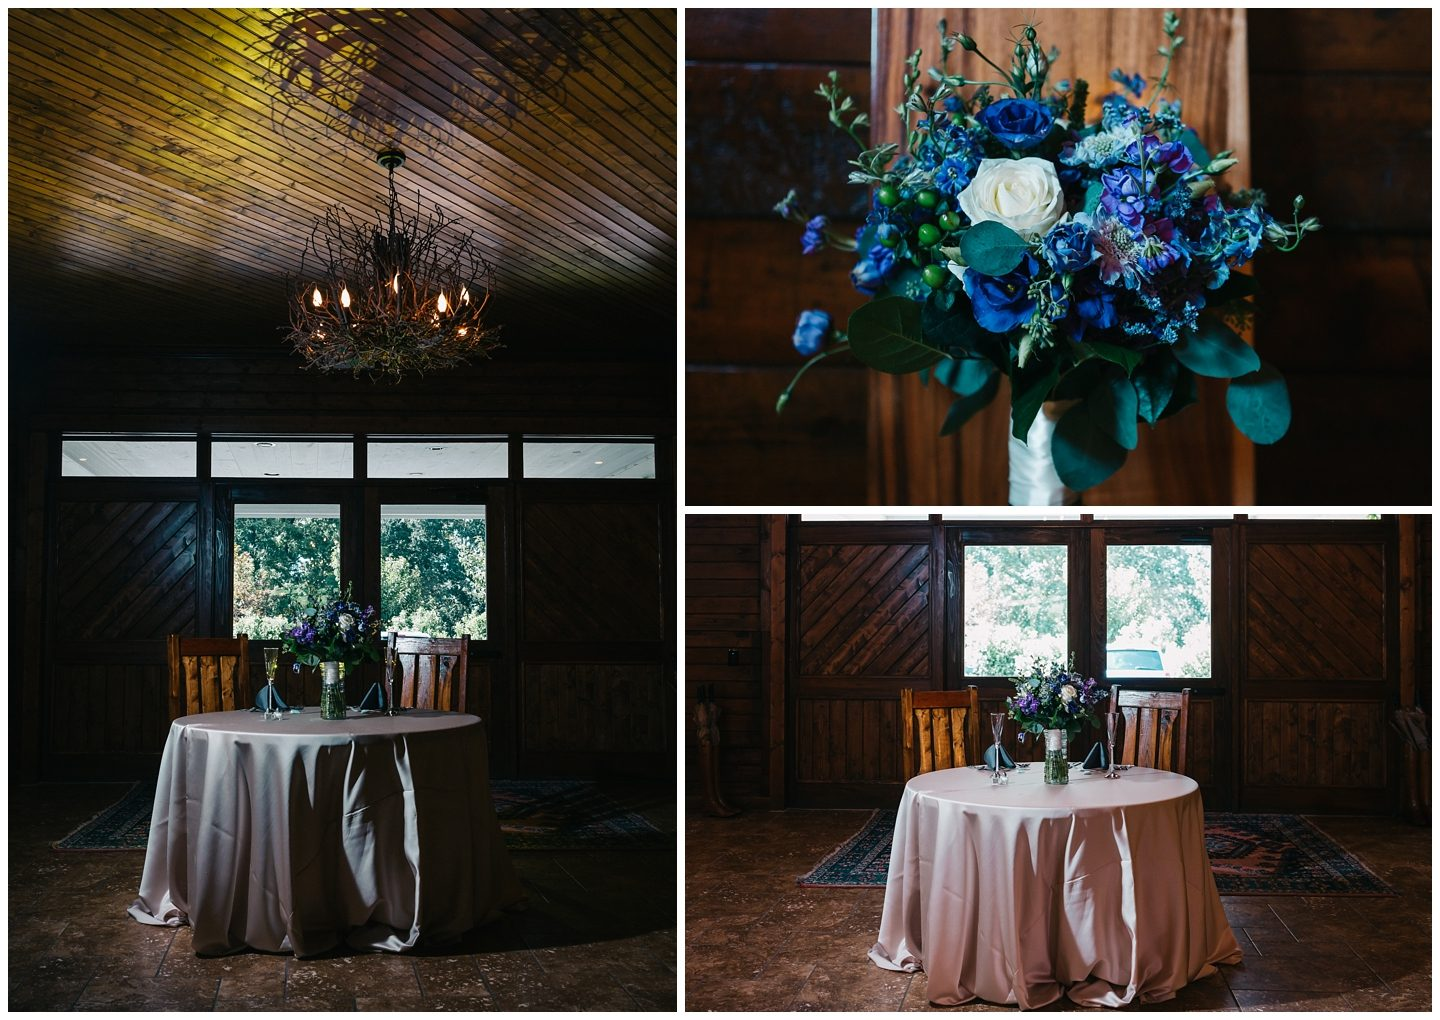 The Stables at Hunter Valley Farms, The Stables at Hunter Valley Farms Wedding- Kalyn & David, Derek Halkett Photography